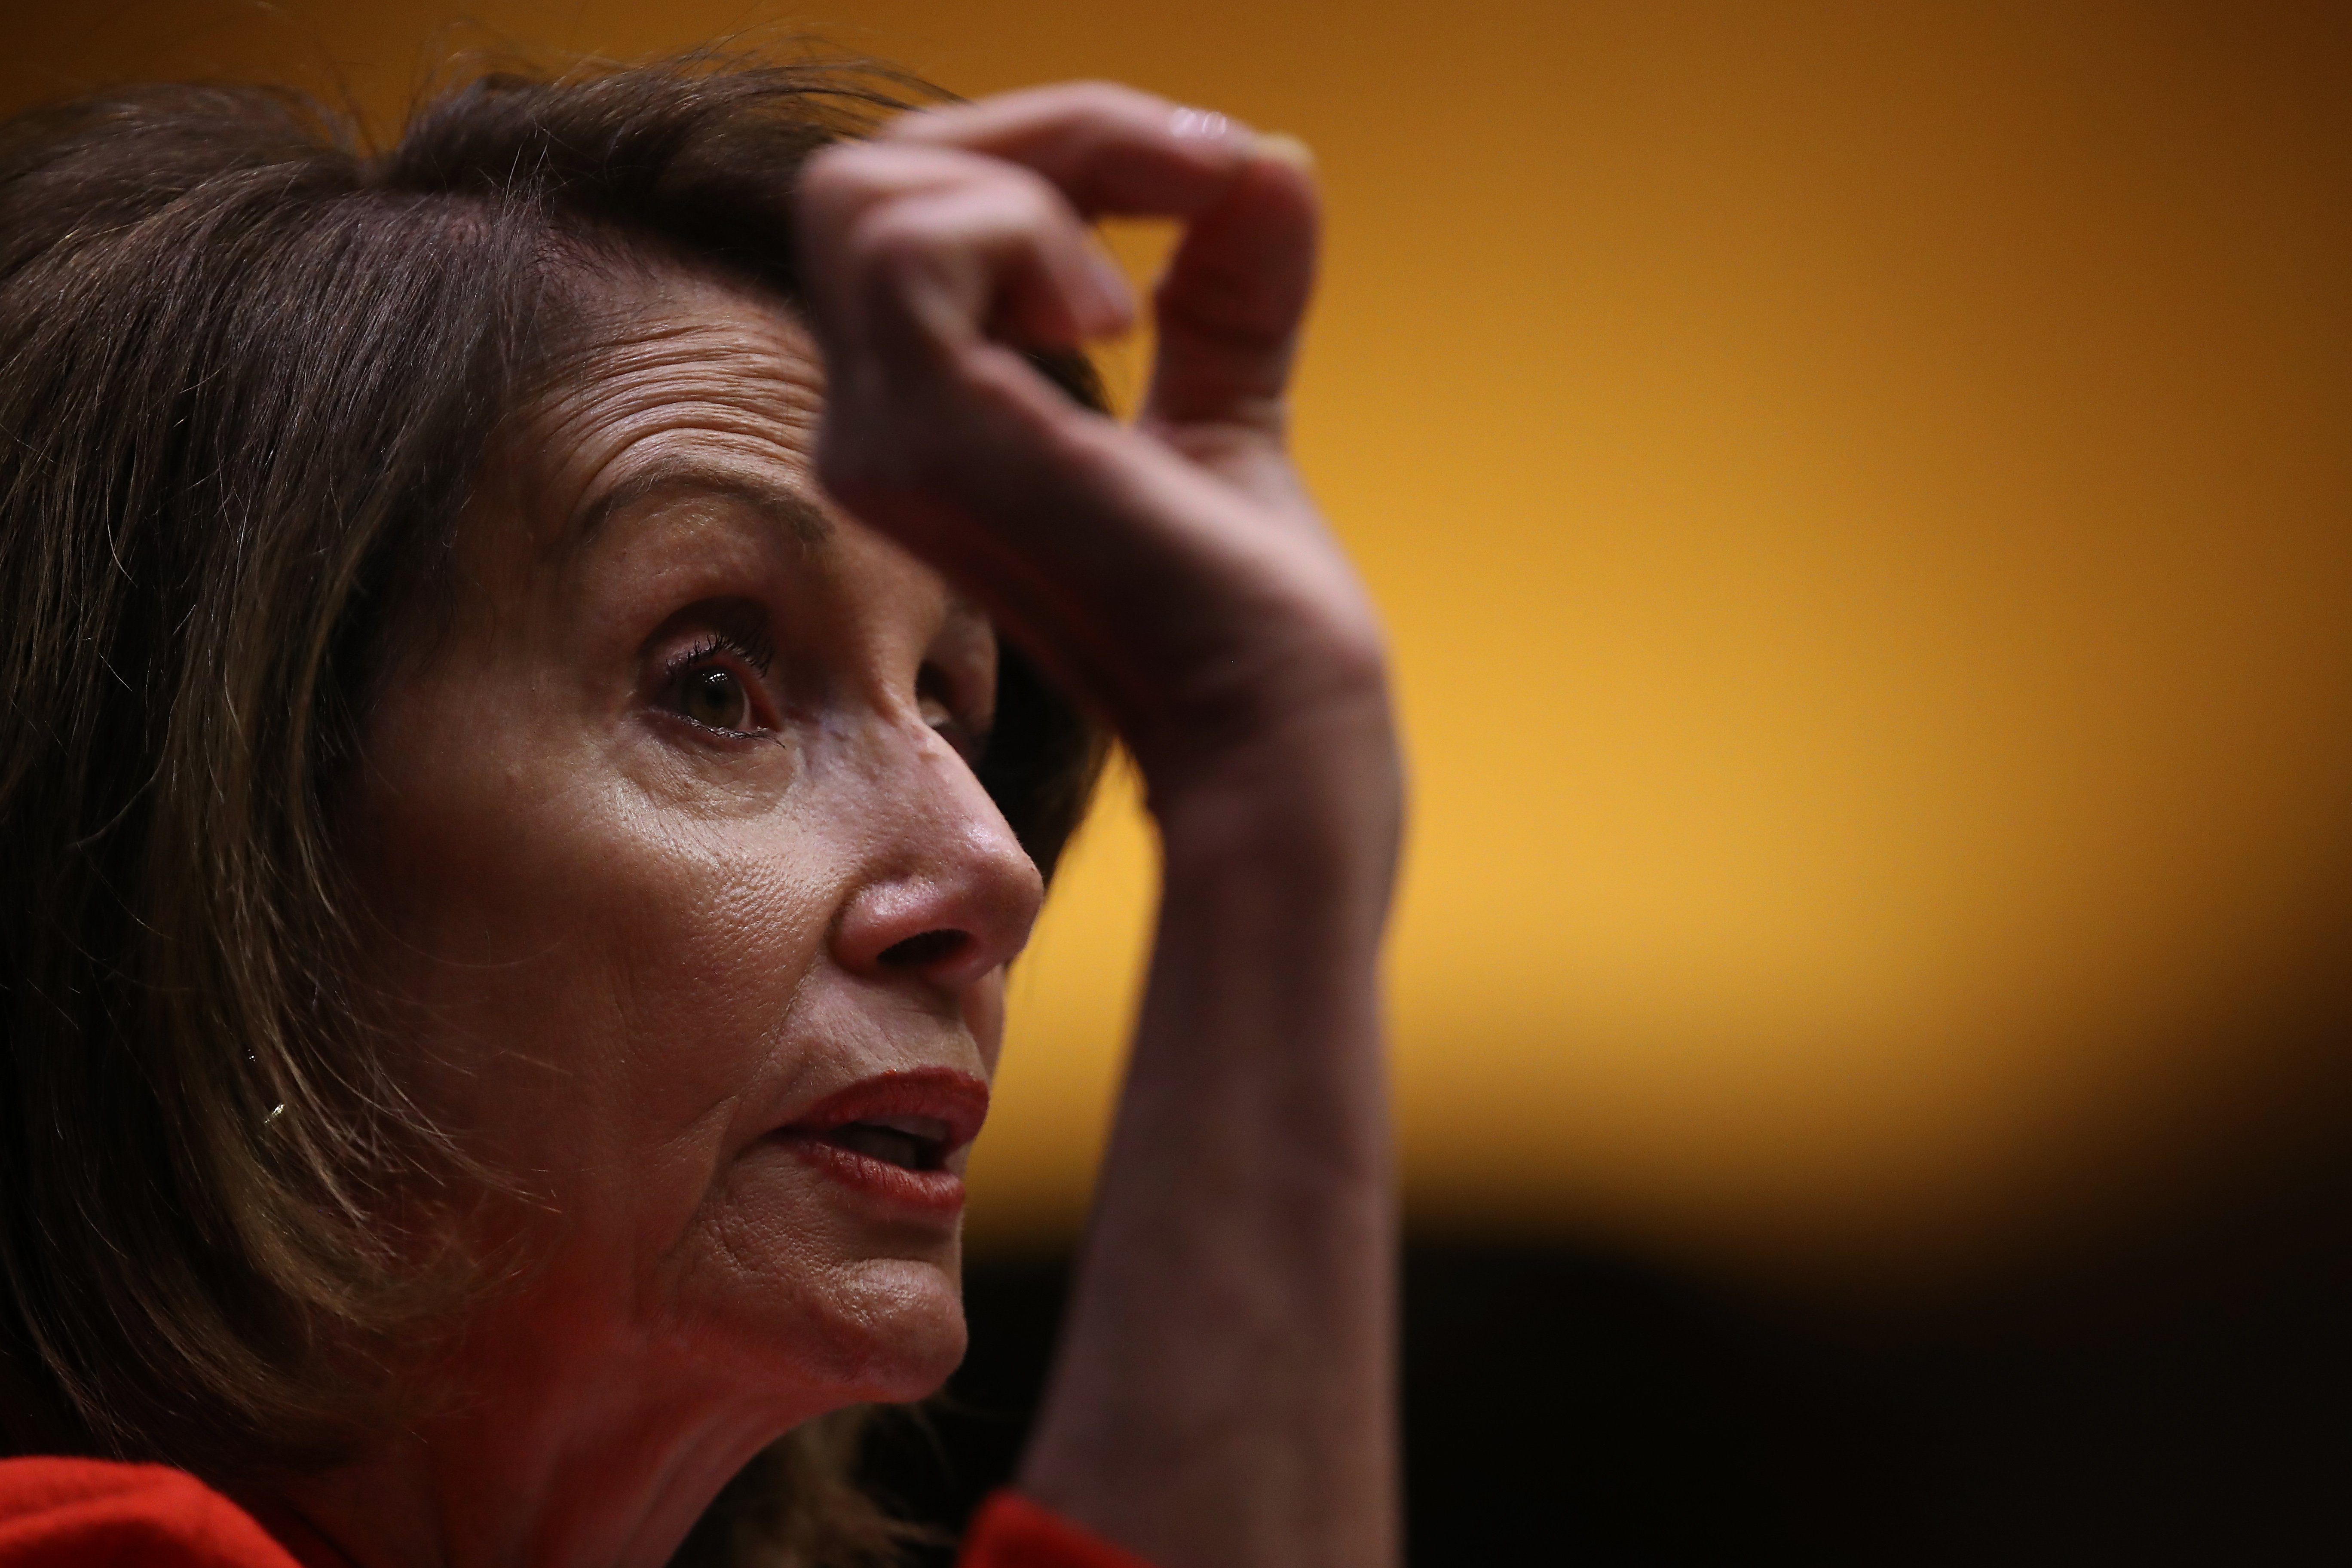 House of Representatives Nancy Pelosi speaking at Capitol Hill | Photo: Getty Images